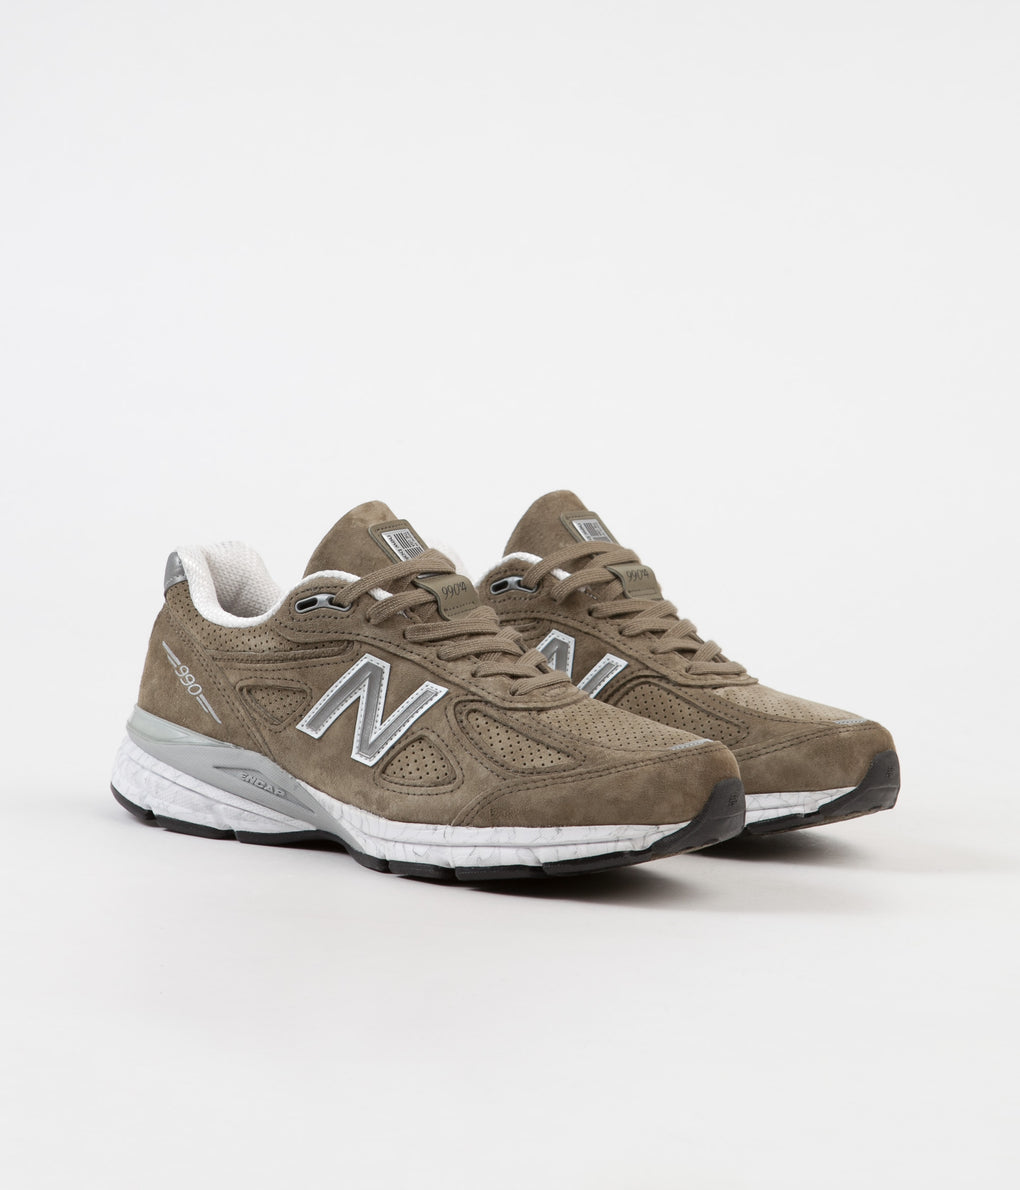 New Balance M990V4 Made In US Shoes - Covert Green